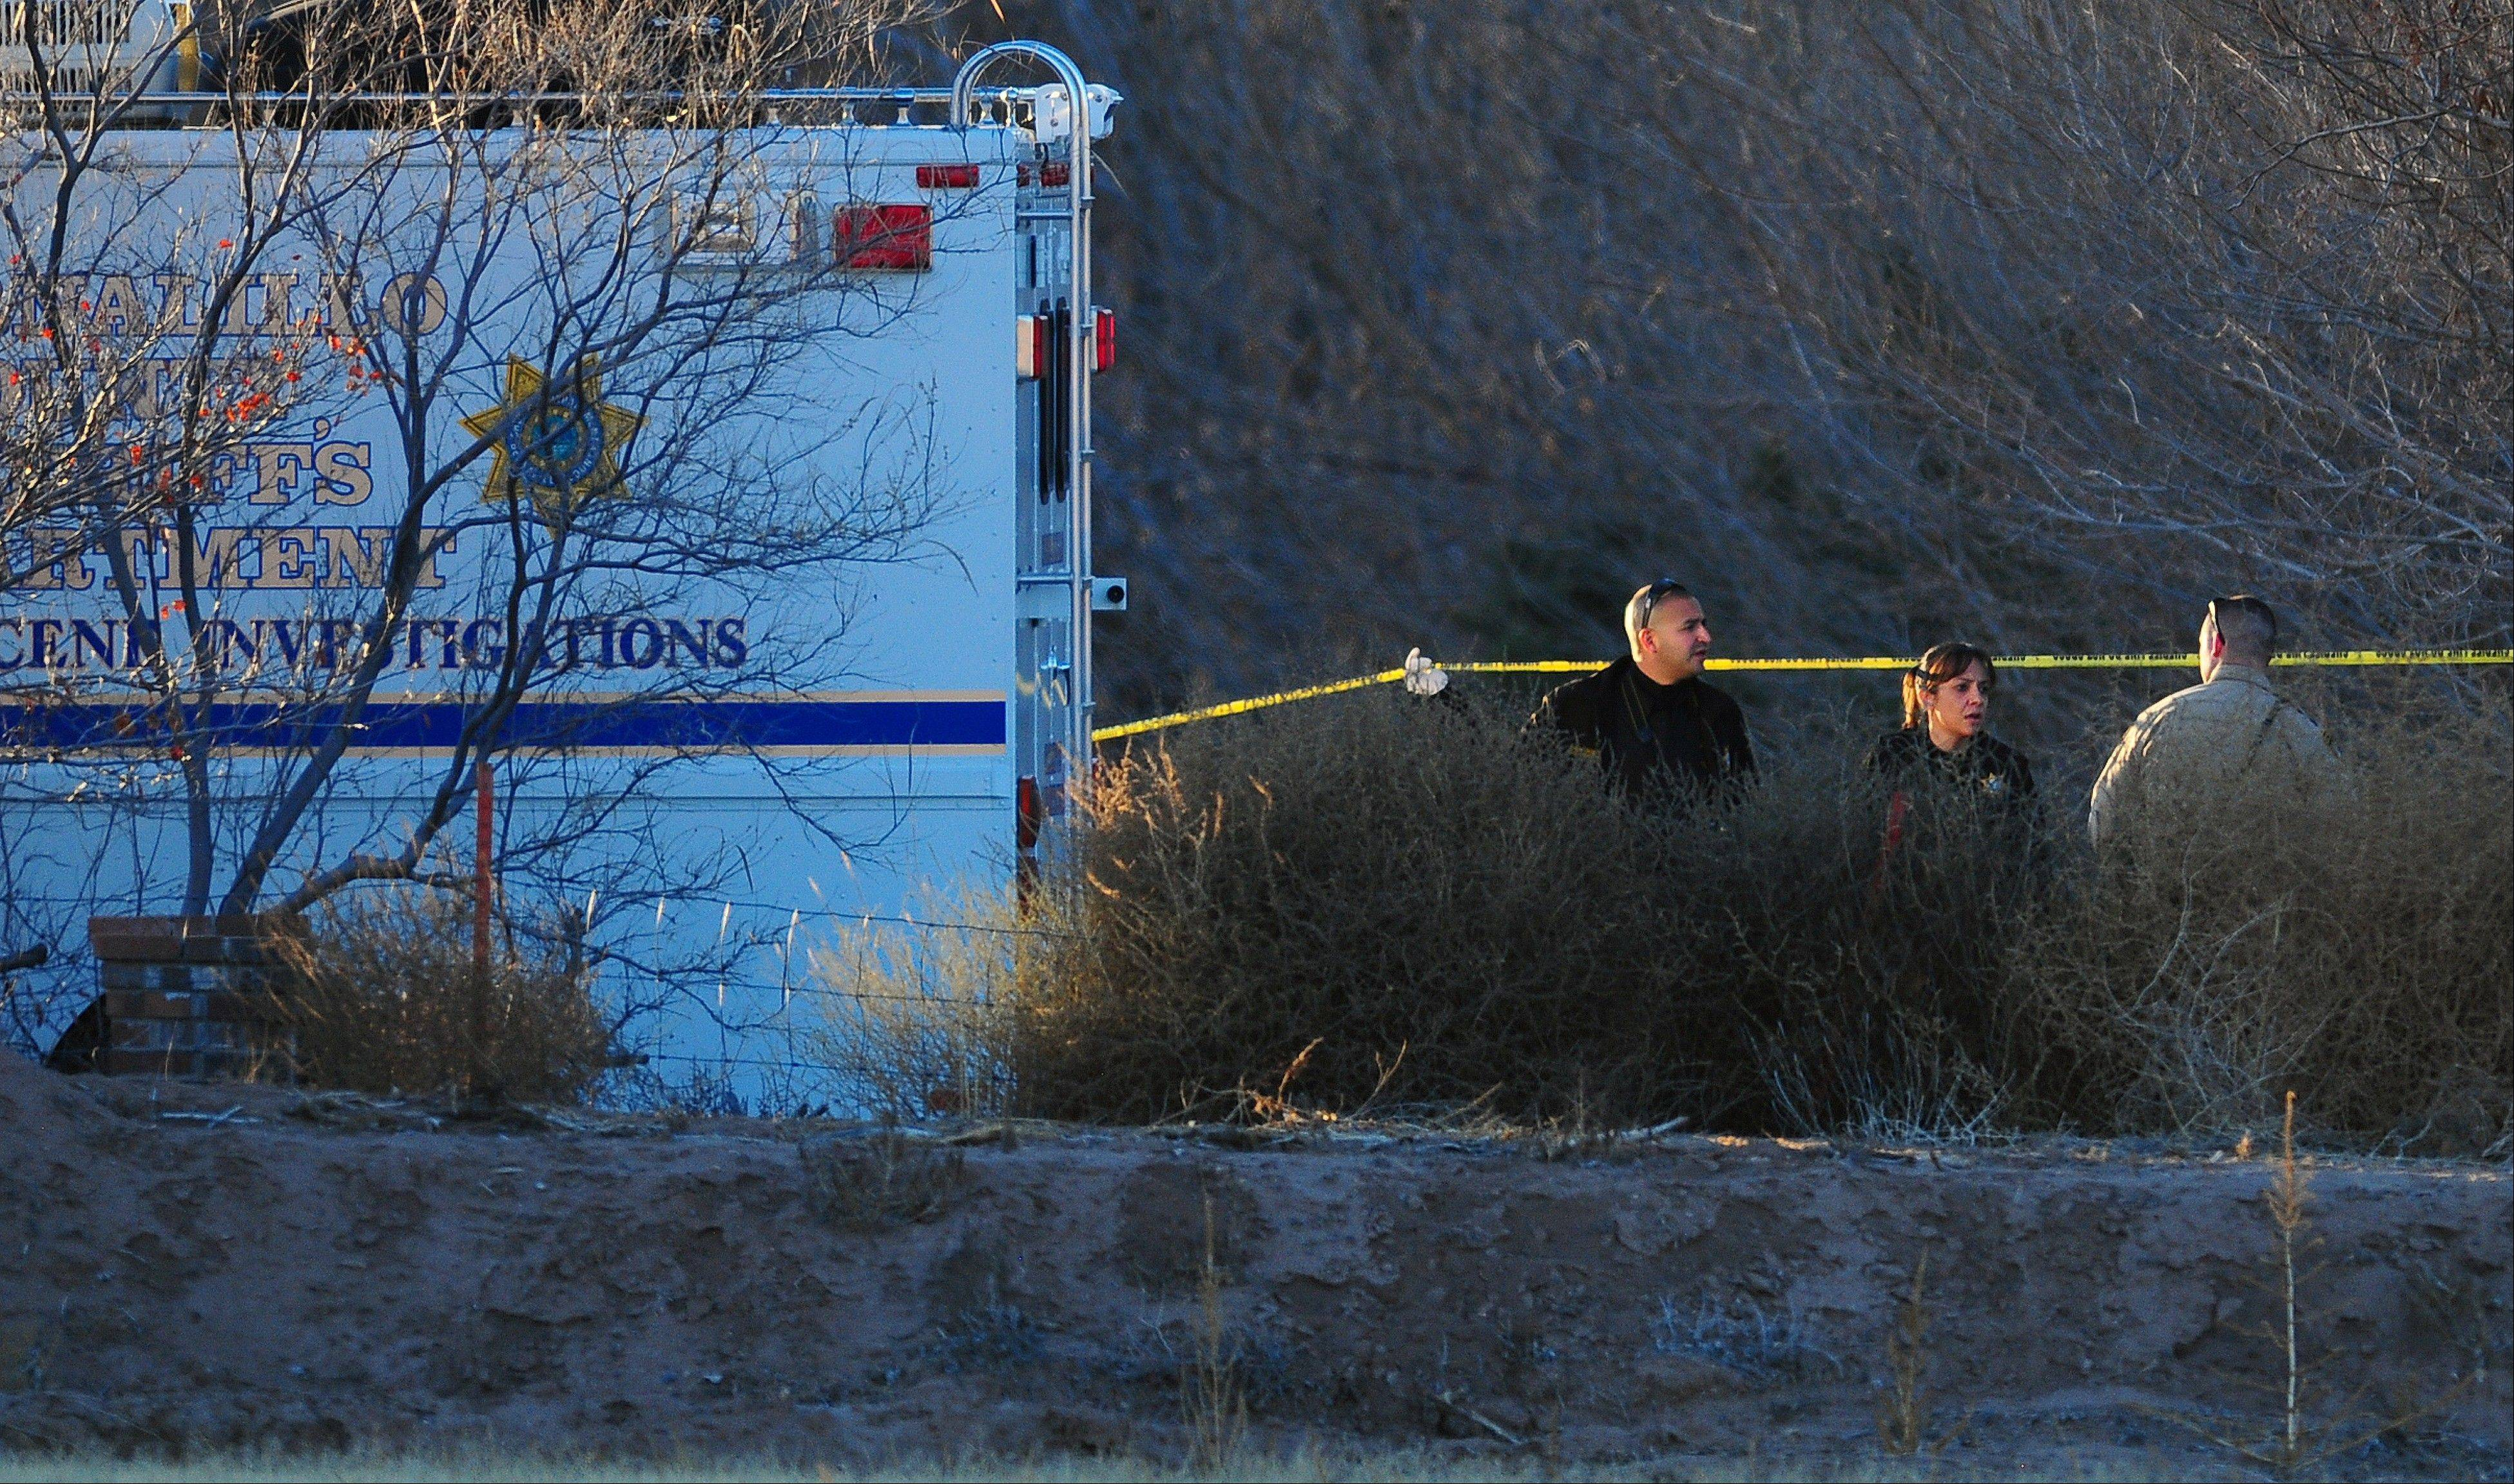 Bernalillo Sheriff Deputies investigate at the scene of the multiple homicide near Albuquerque, N.M., Sunday. A 15-year-old boy was in custody following the shooting deaths the teen's parents and three young children, all of whom were found dead in a New Mexico home.